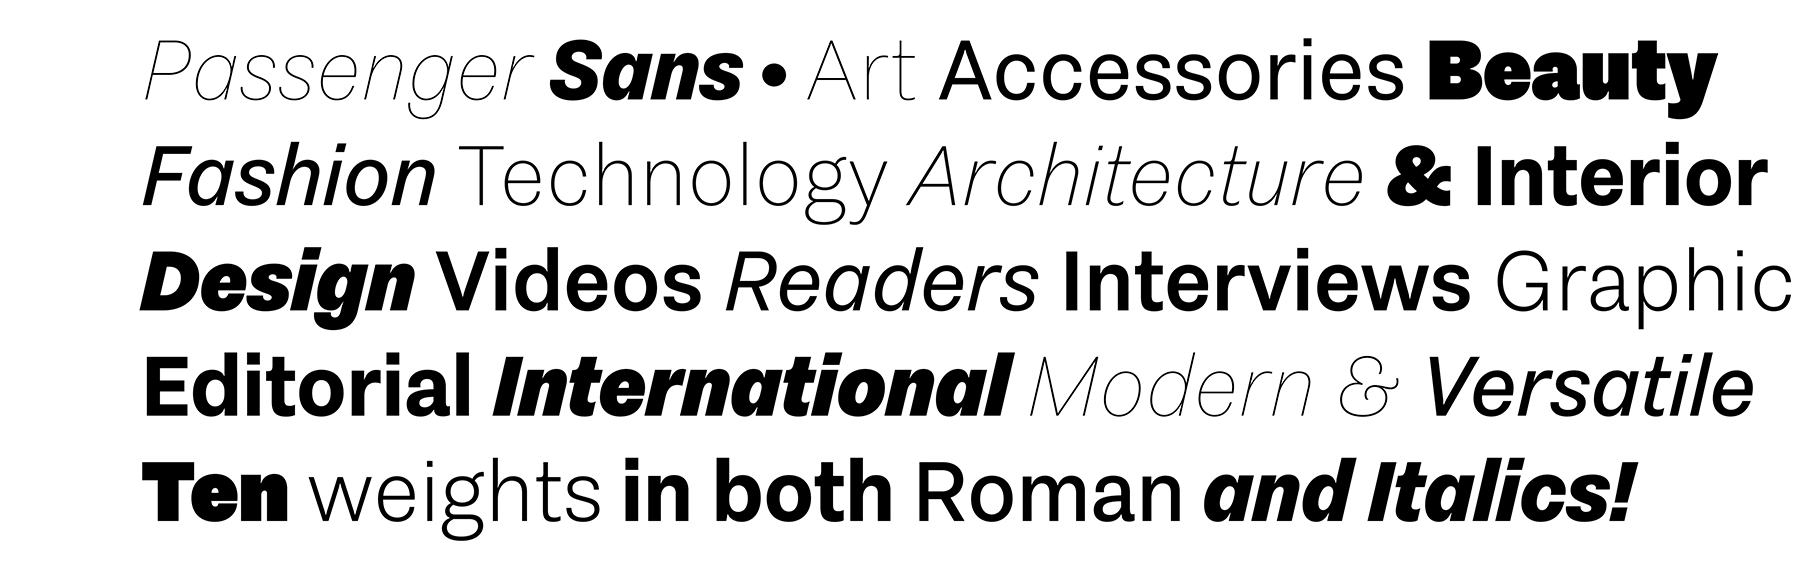 Two ambitious new releases: Our large Passenger Sans family